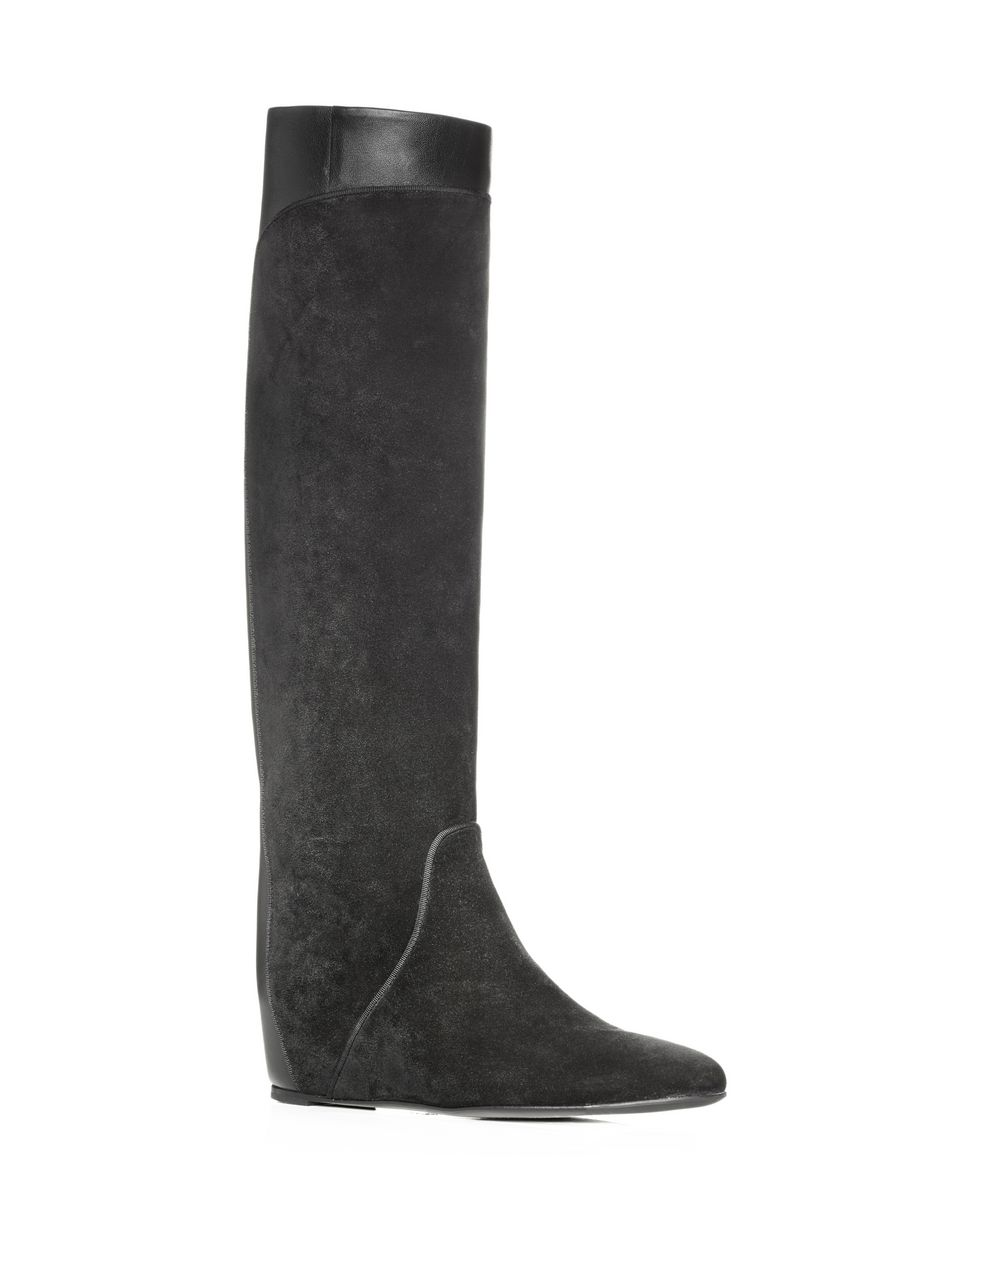 BLACK WEDGE HEEL BOOT  - Lanvin